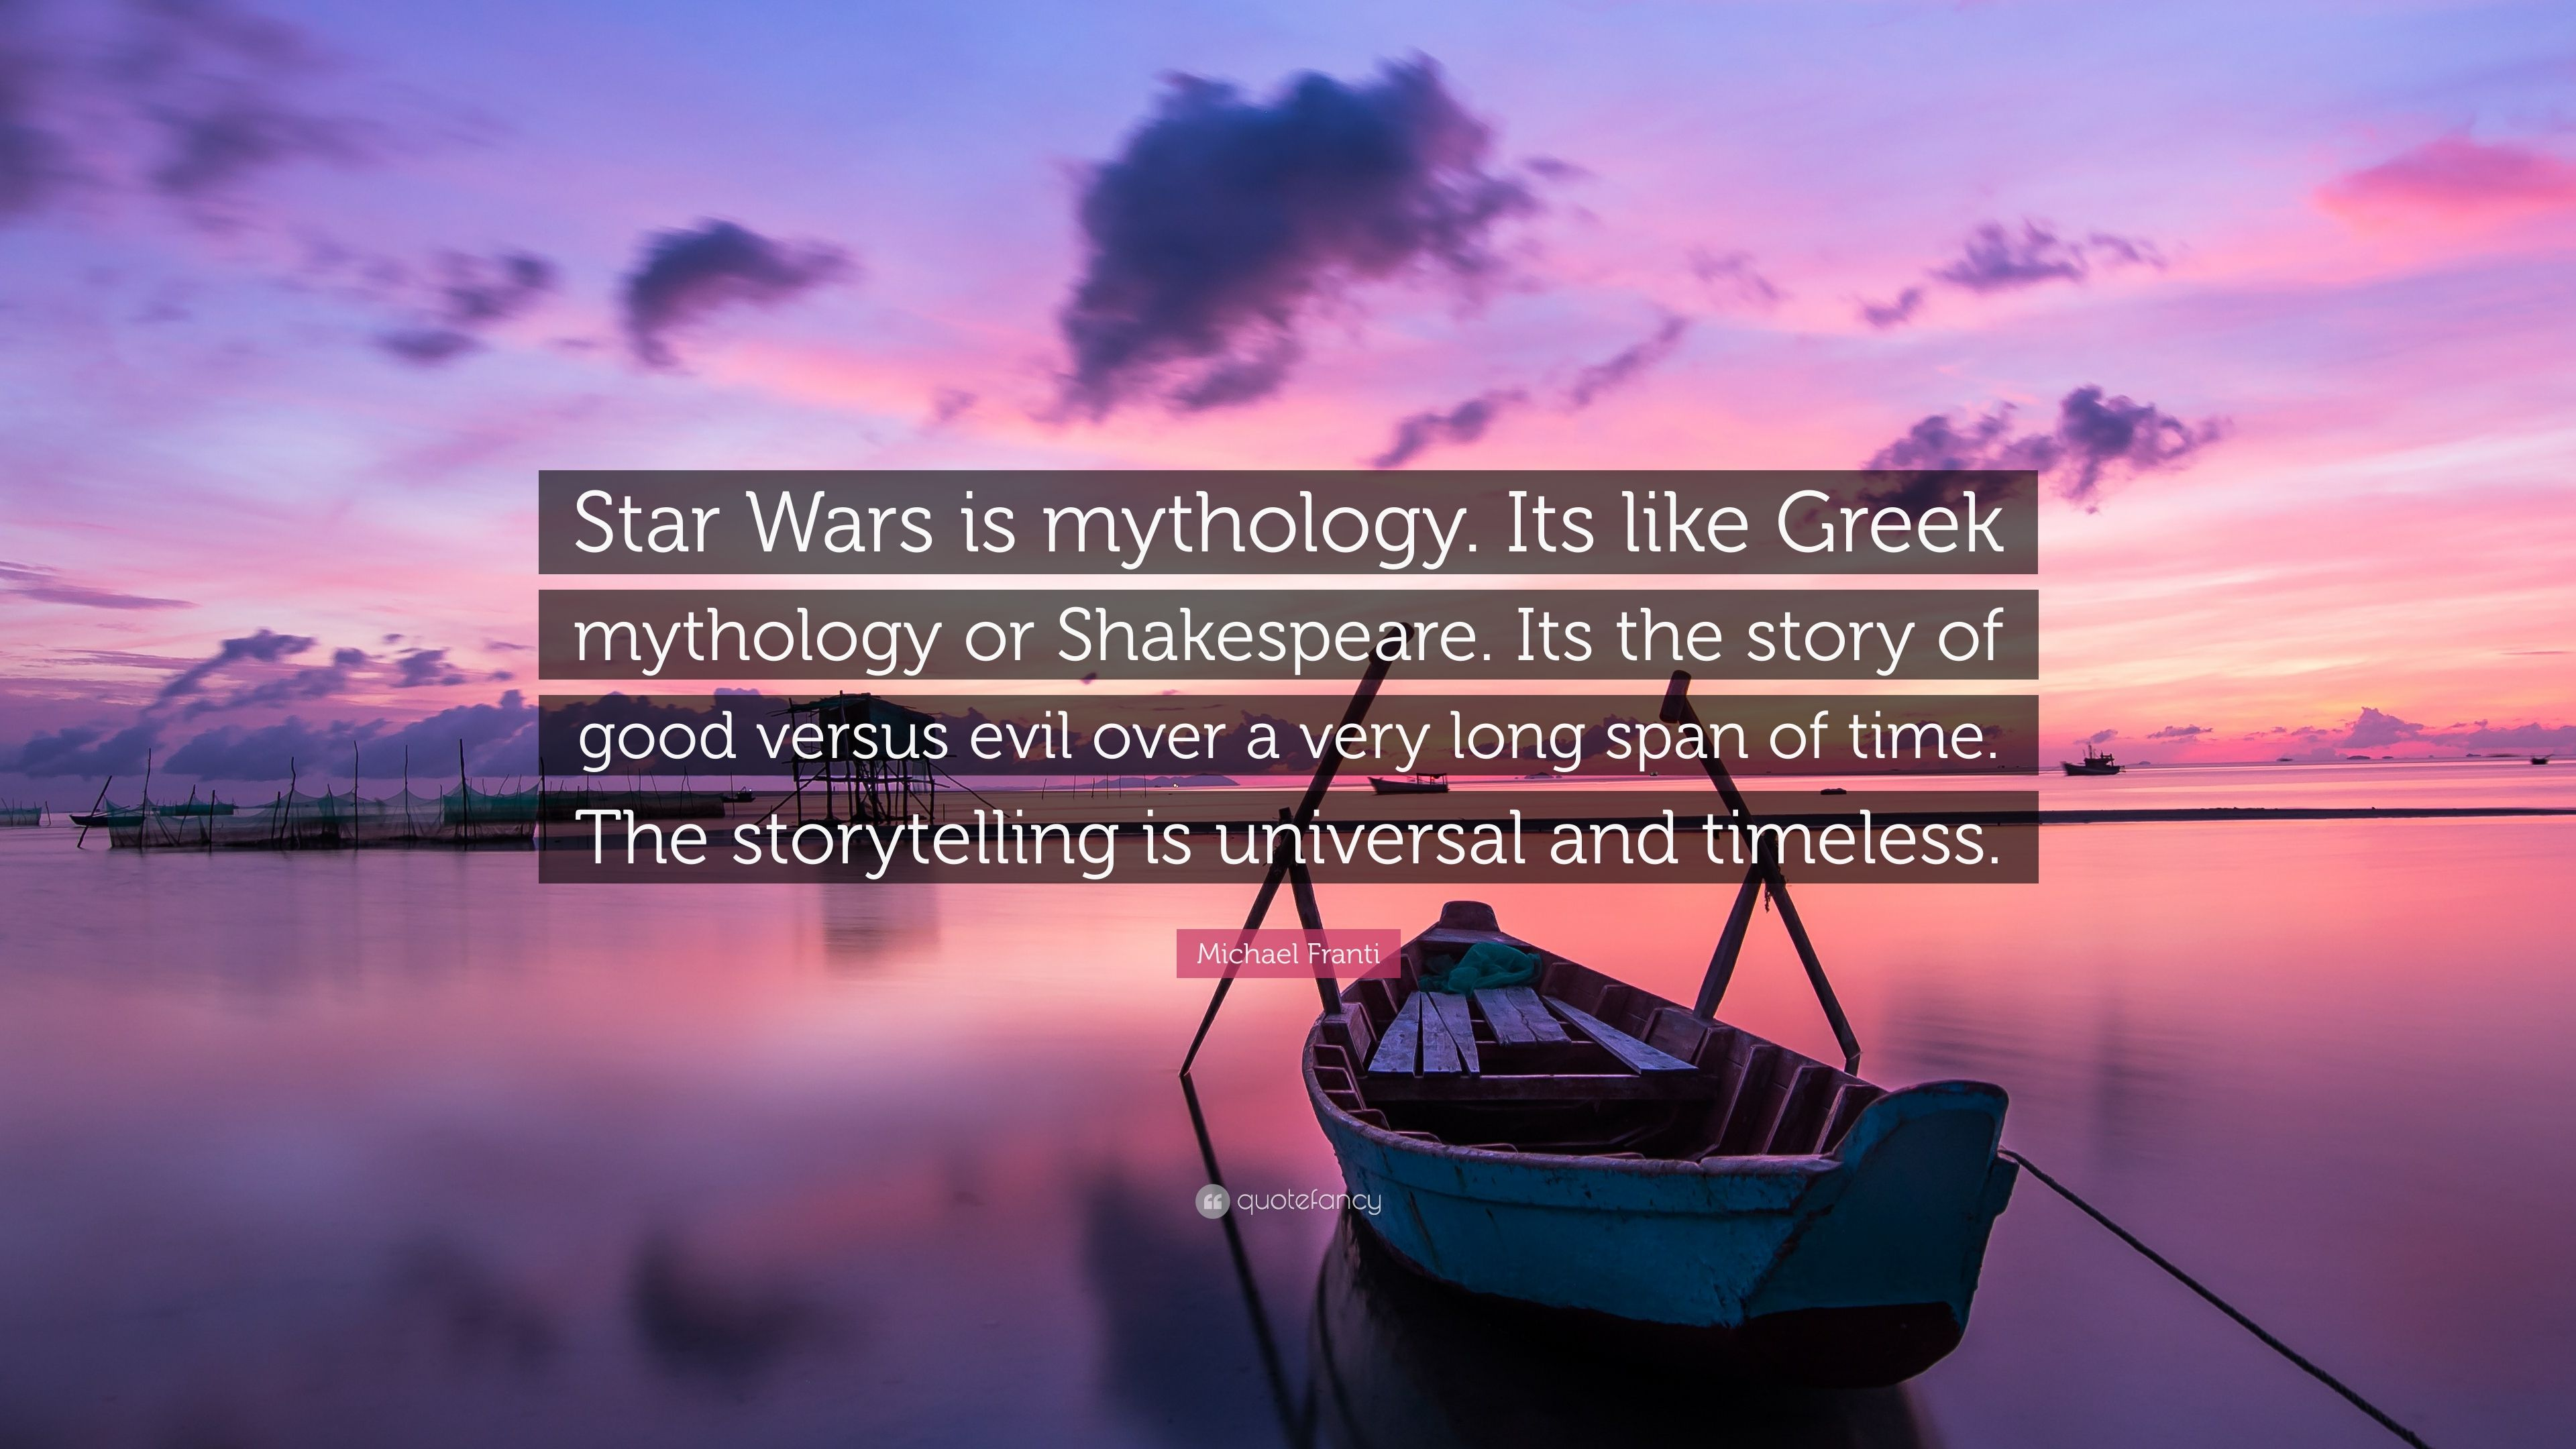 Michael Franti Quote Star Wars Is Mythology Its Like Greek Mythology Or Shakespeare Its The Story Of Good Versus Evil Over A Very Long Span 7 Wallpapers Quotefancy